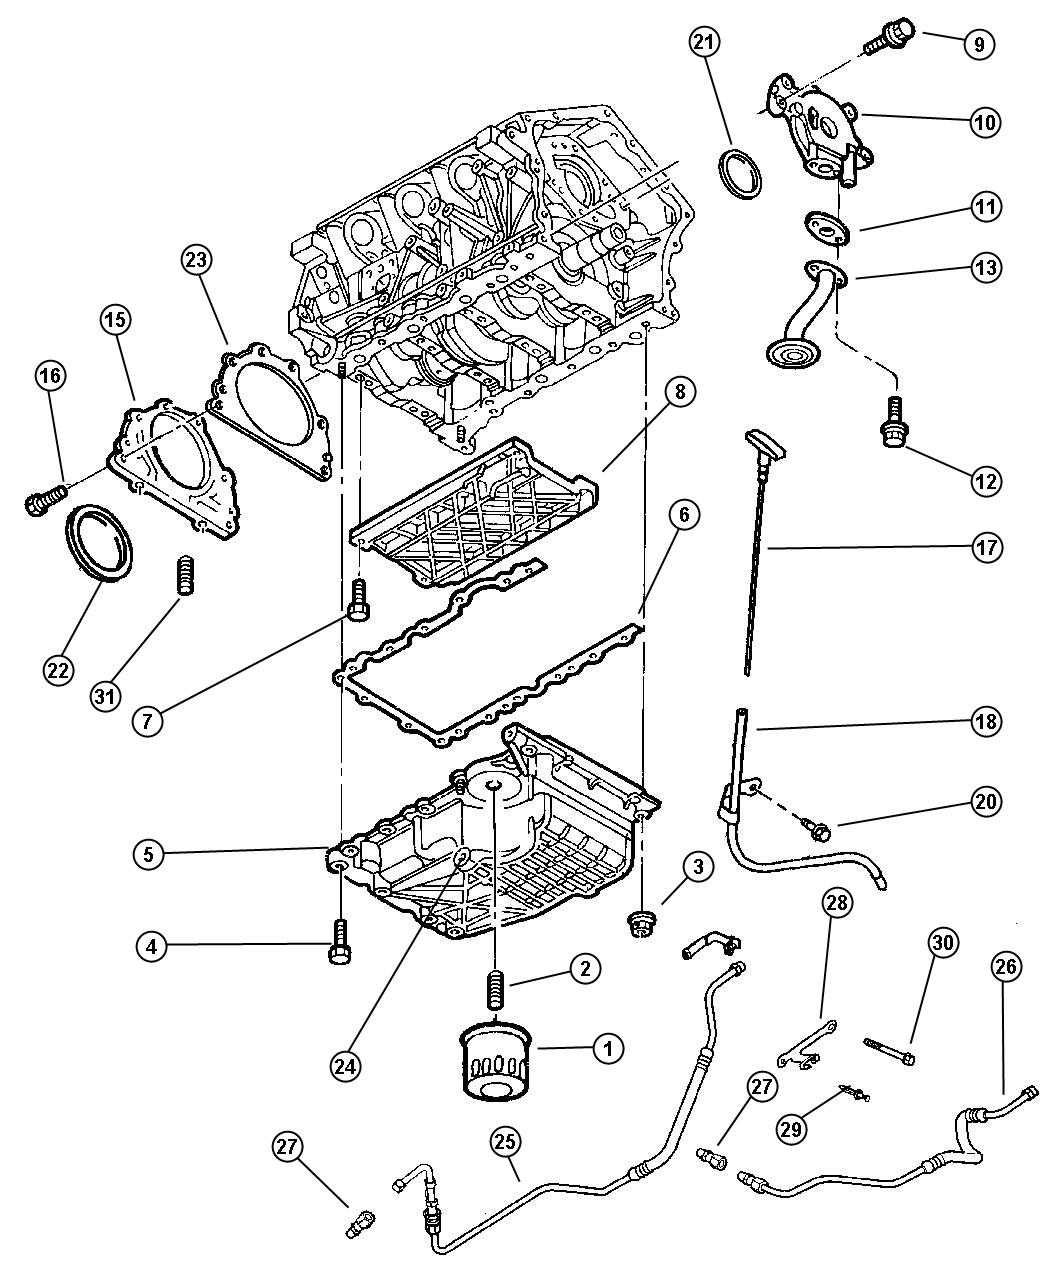 2001 nissan maxima catalytic converter diagram